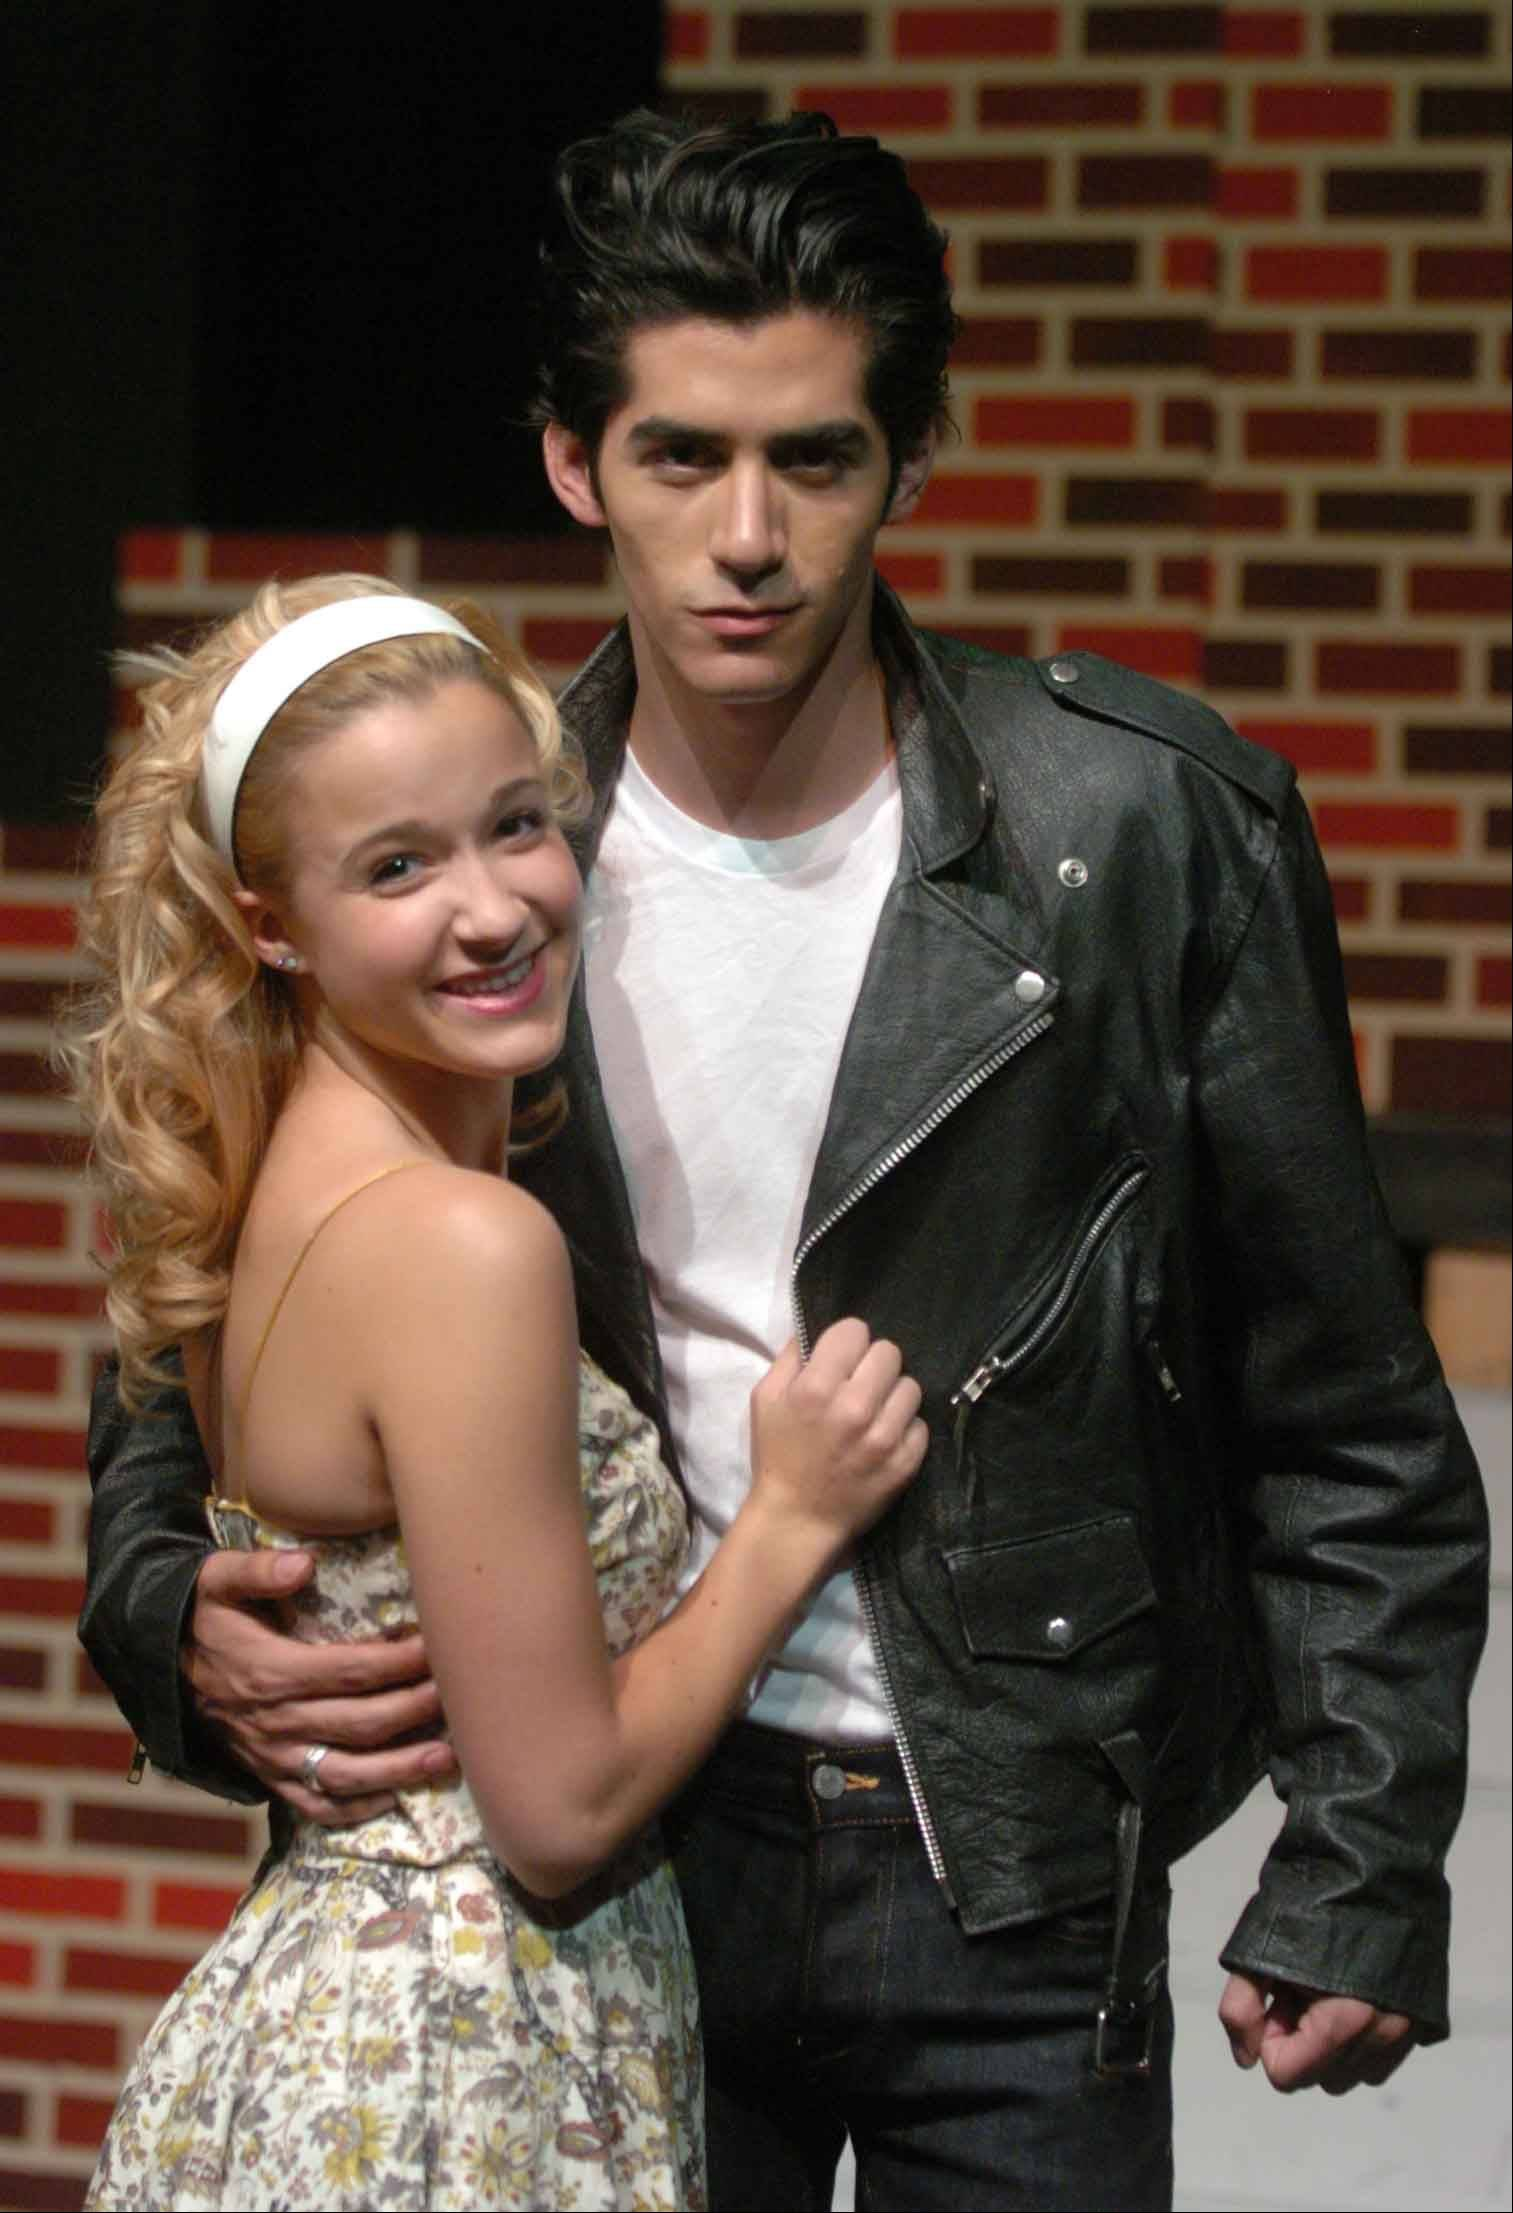 "Hannah Hudson of Downers Grove plays Sandy and Vince Soto of Chicago plays Danny in Summer Place Theatre's production of ""Grease."" The show opens at 8 p.m. Friday, July 8, and continues on weekends through July 24 at Center Stage Theater, 1665 Quincy Ave., Suite 131, Naperville."